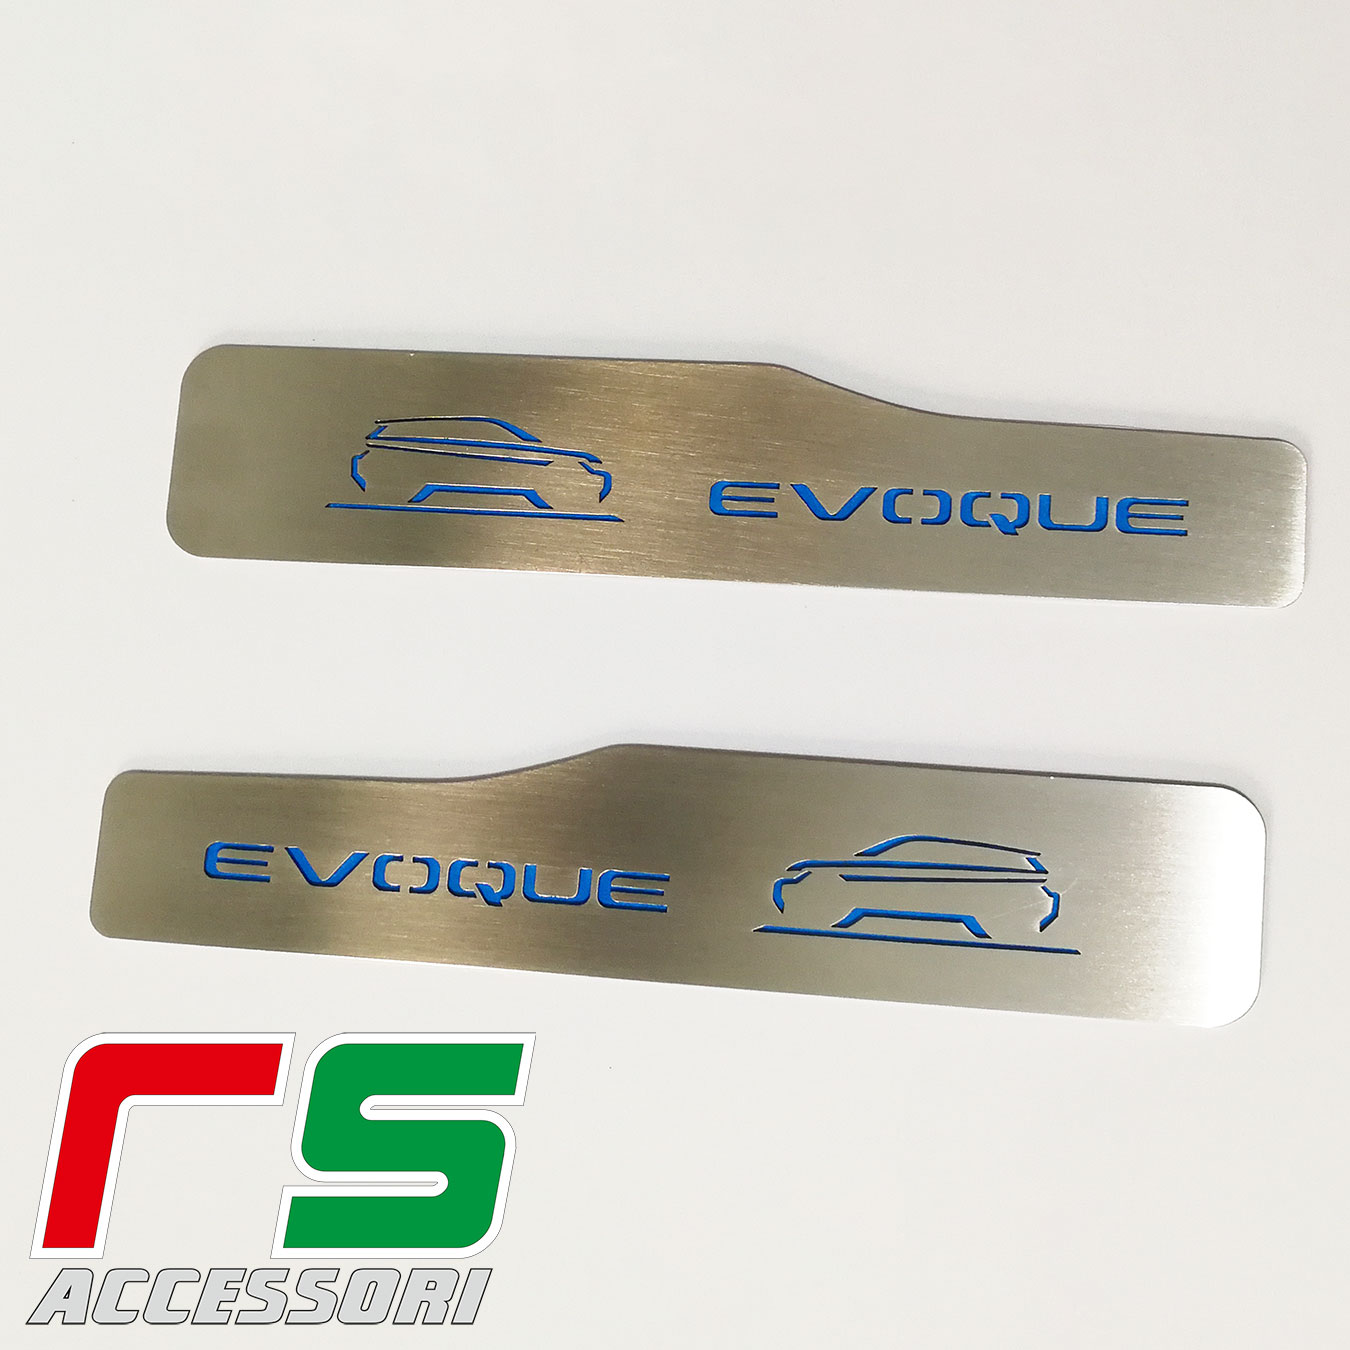 rear door sills at the rear of the Range Rover Evoque stainless steel